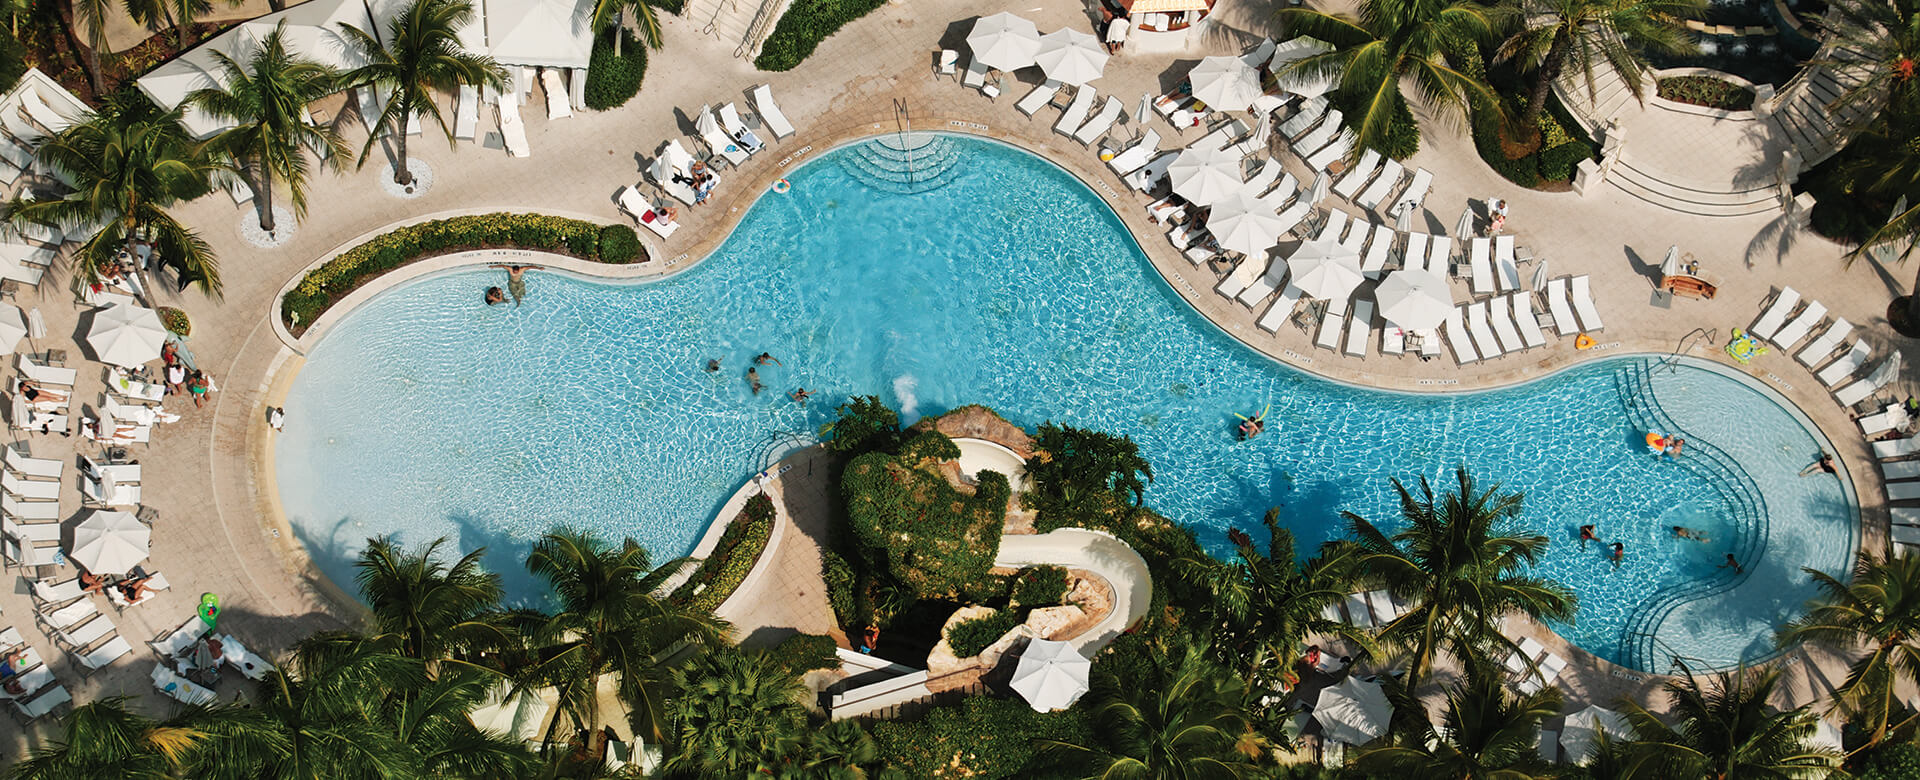 naples grande pool aerial view